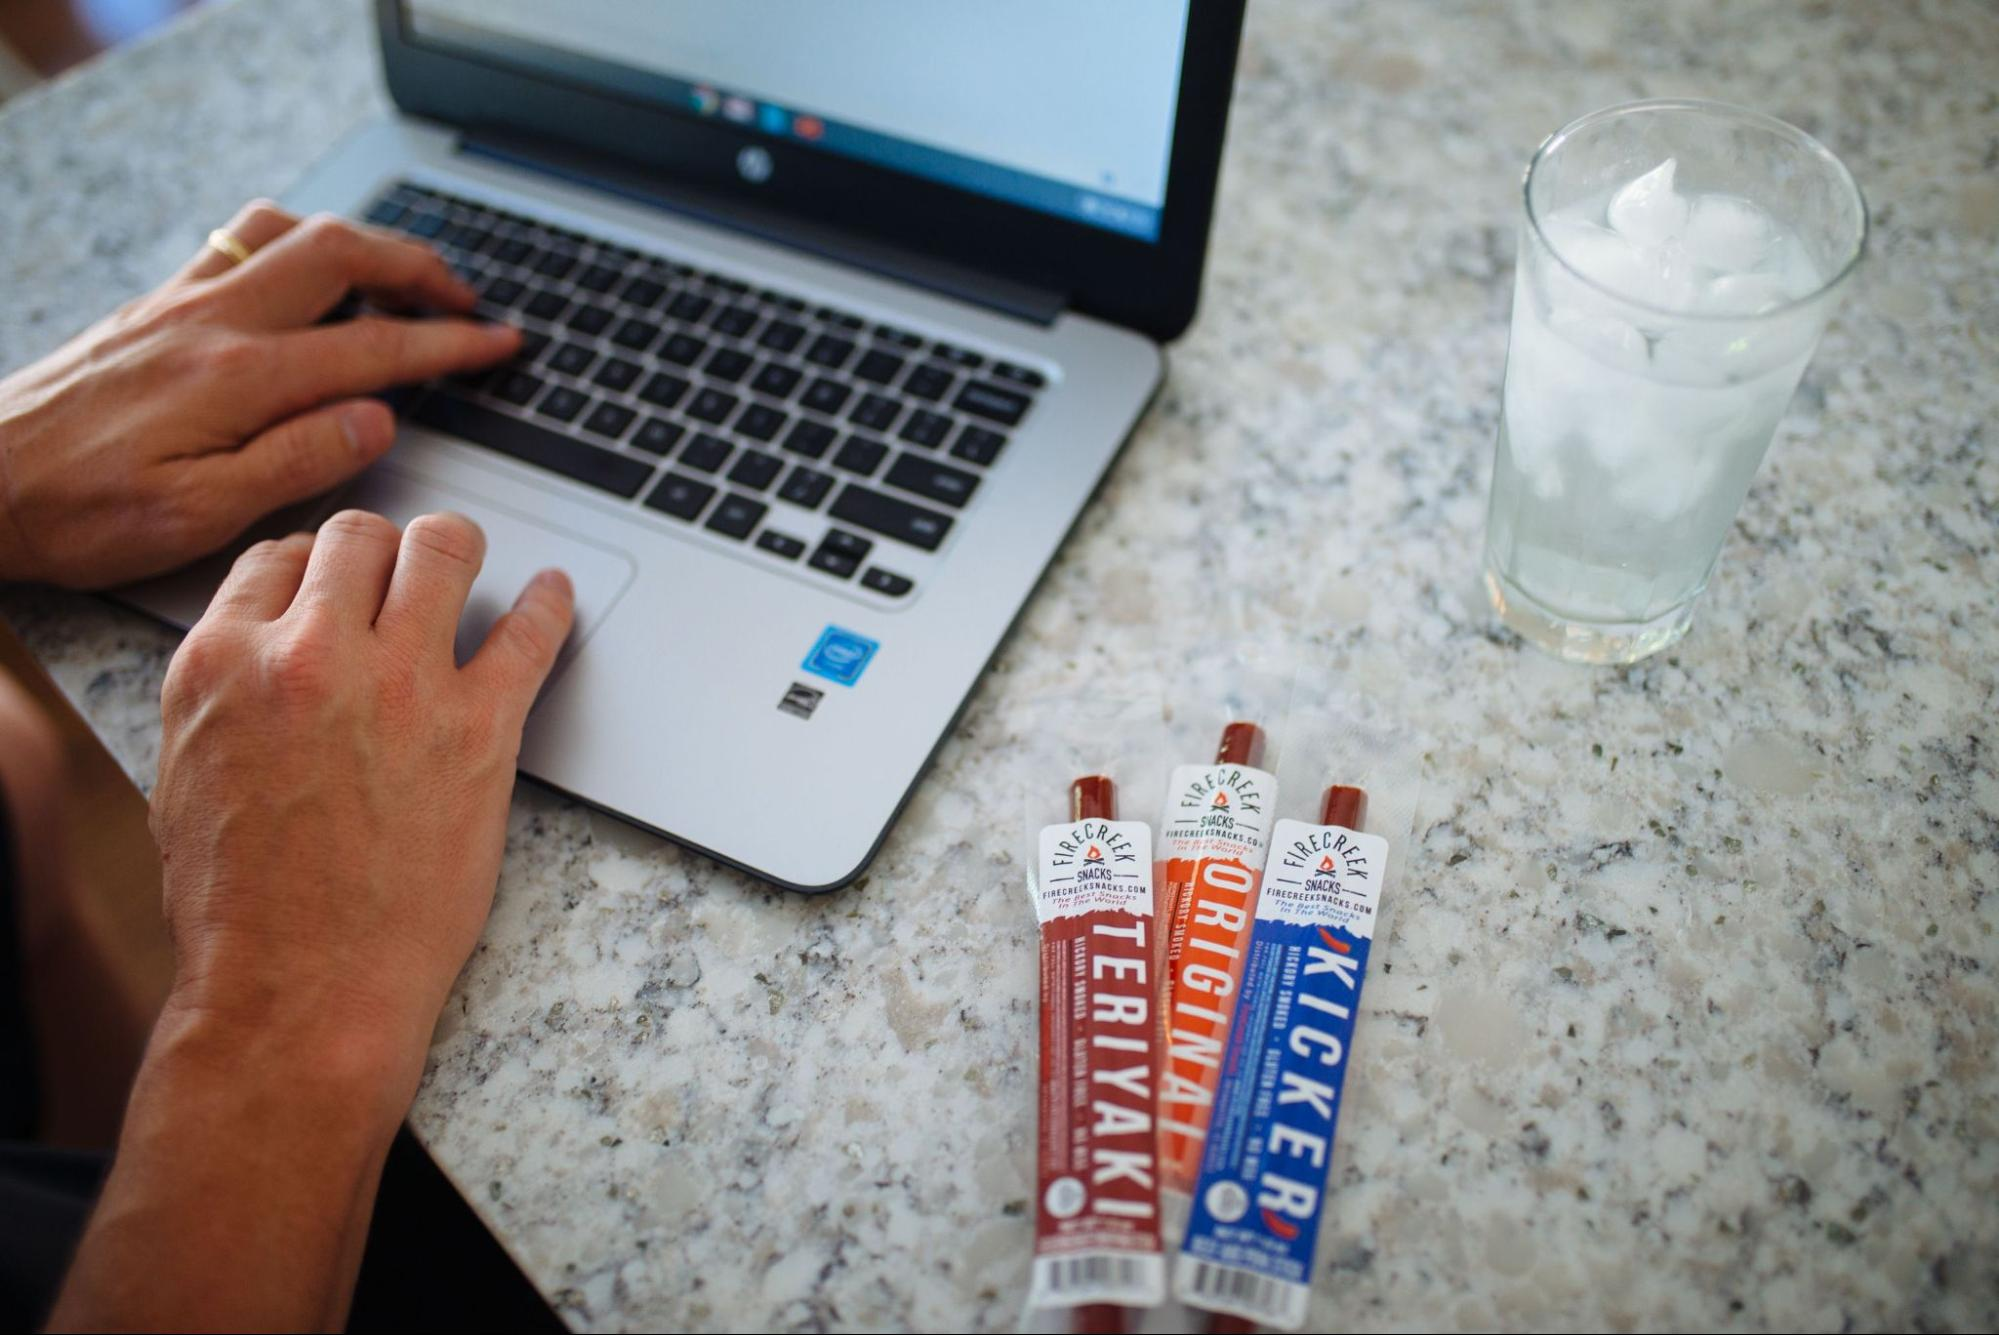 Three jerky from FireCreek Snacks on a marble countertop backdropped by a pair of hands typing on a laptop.